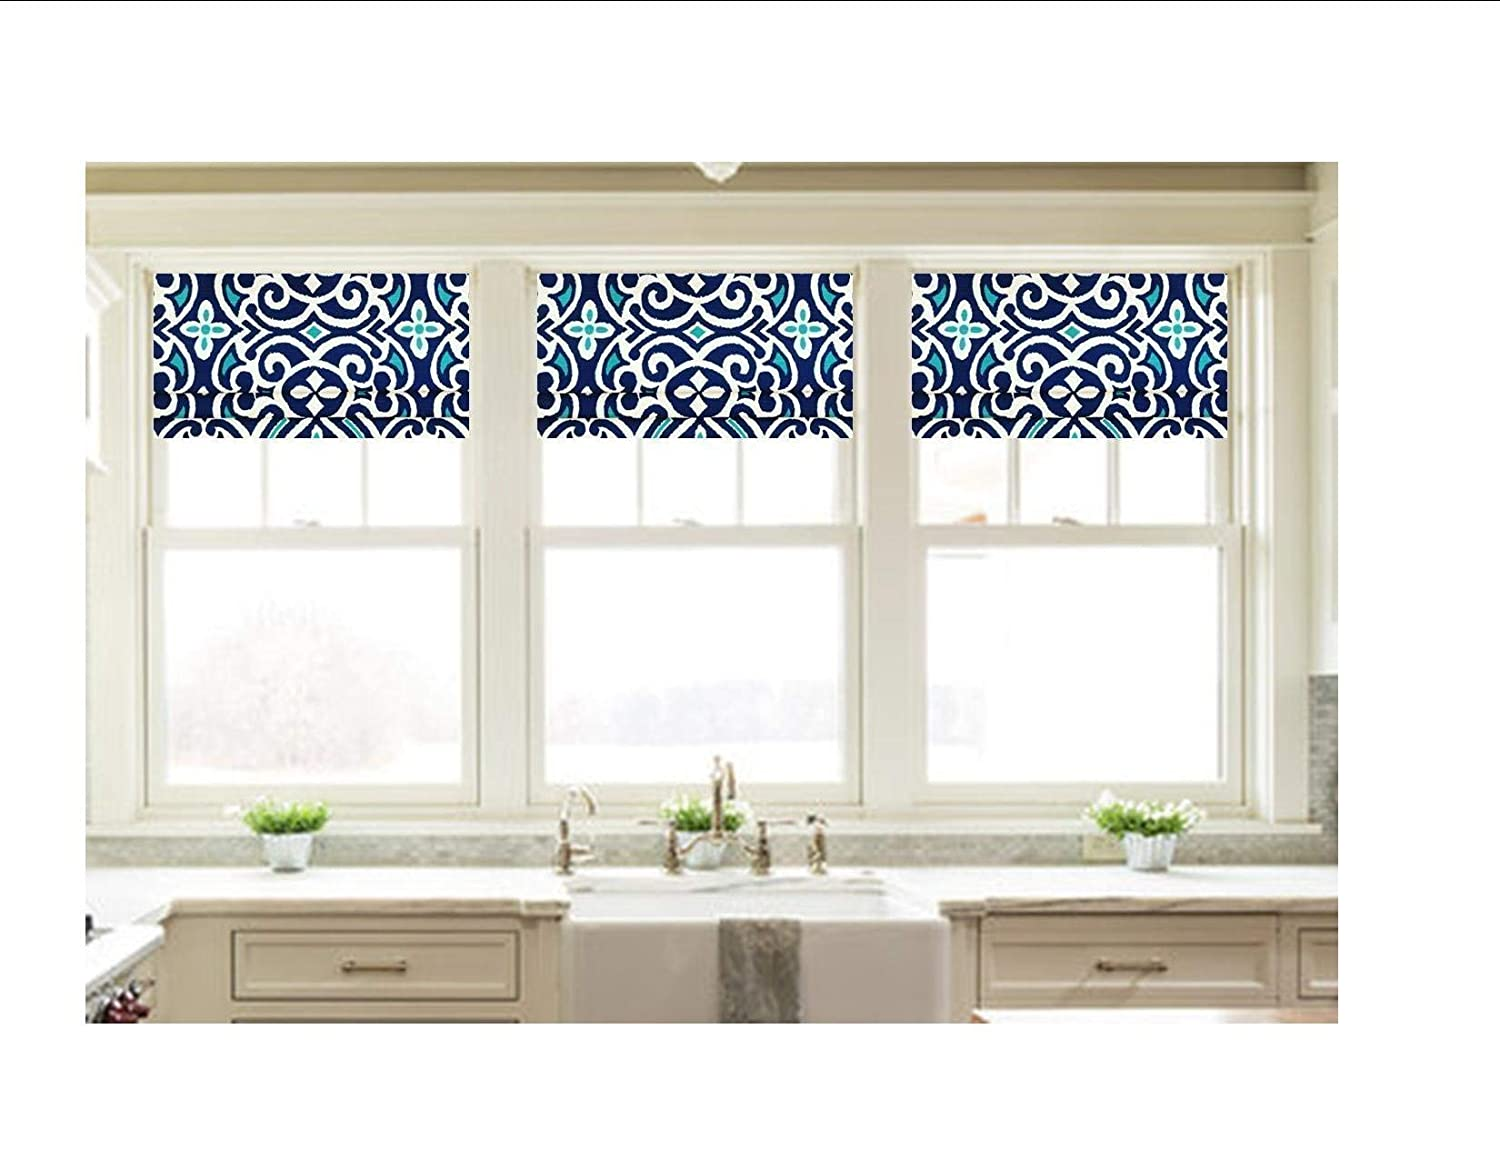 Fully Lined Faux Roman Shade Valance Custom Made in Blue and Aqua Damask Print by Robert Allen 100/% Cotton Ready to Hang